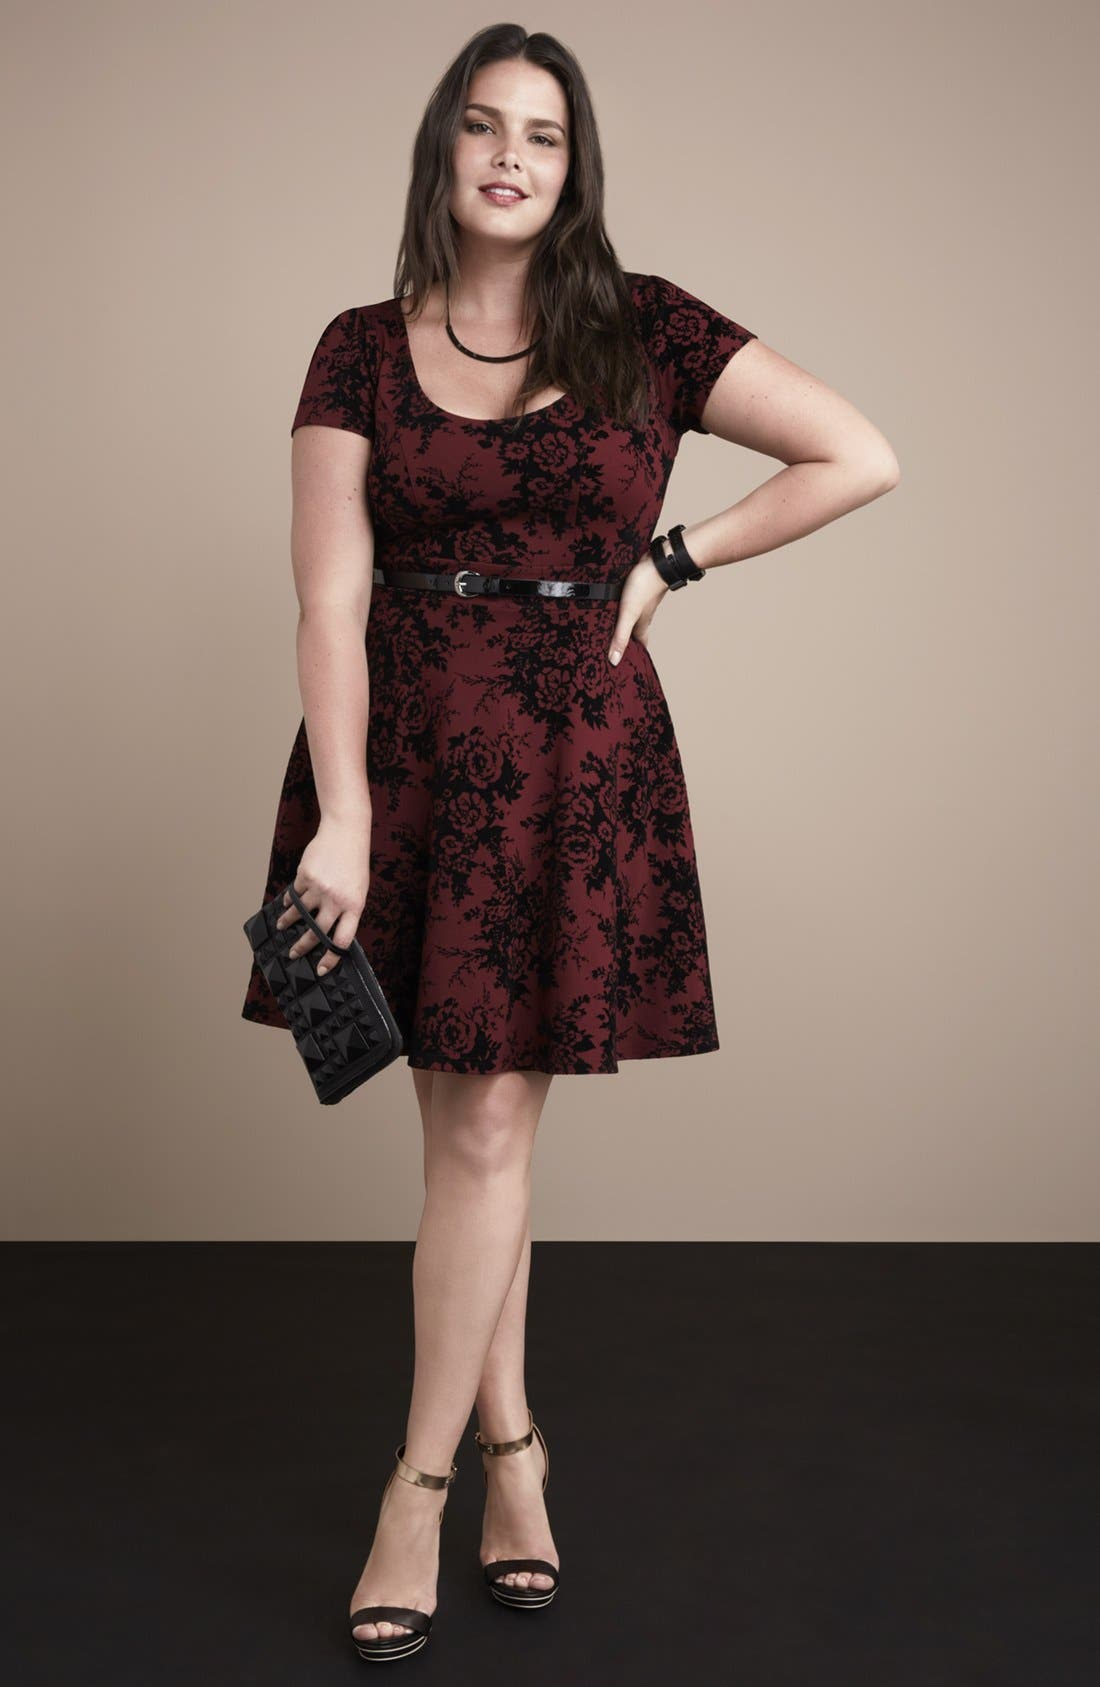 Main Image - City Chic Skater Dress & Accessories